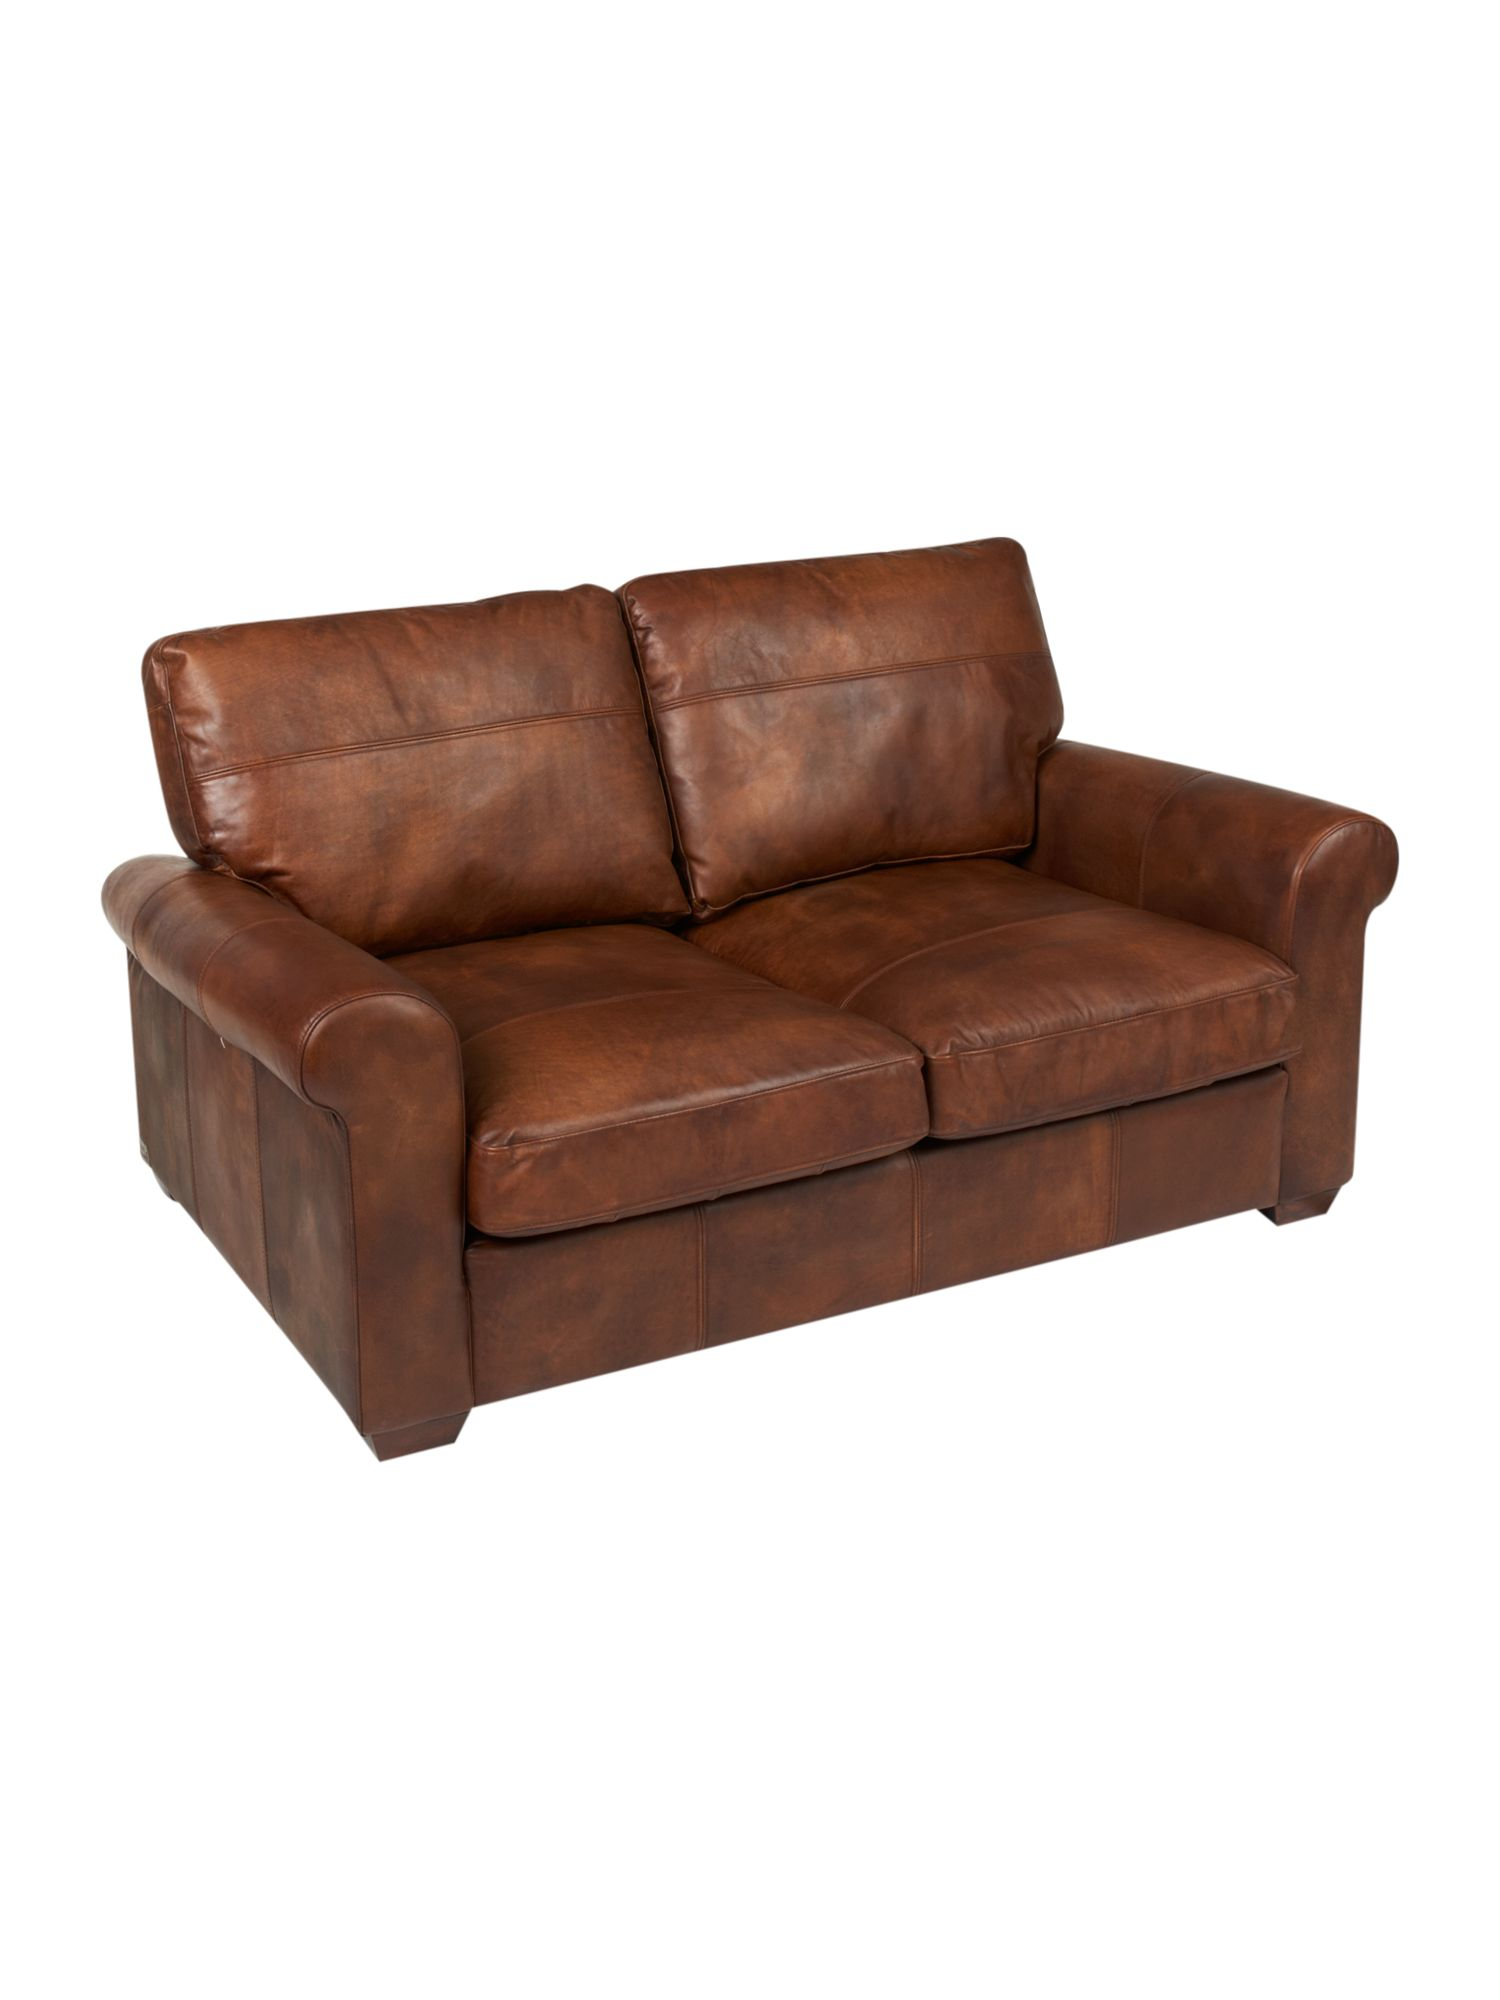 Westminster two seater sofa